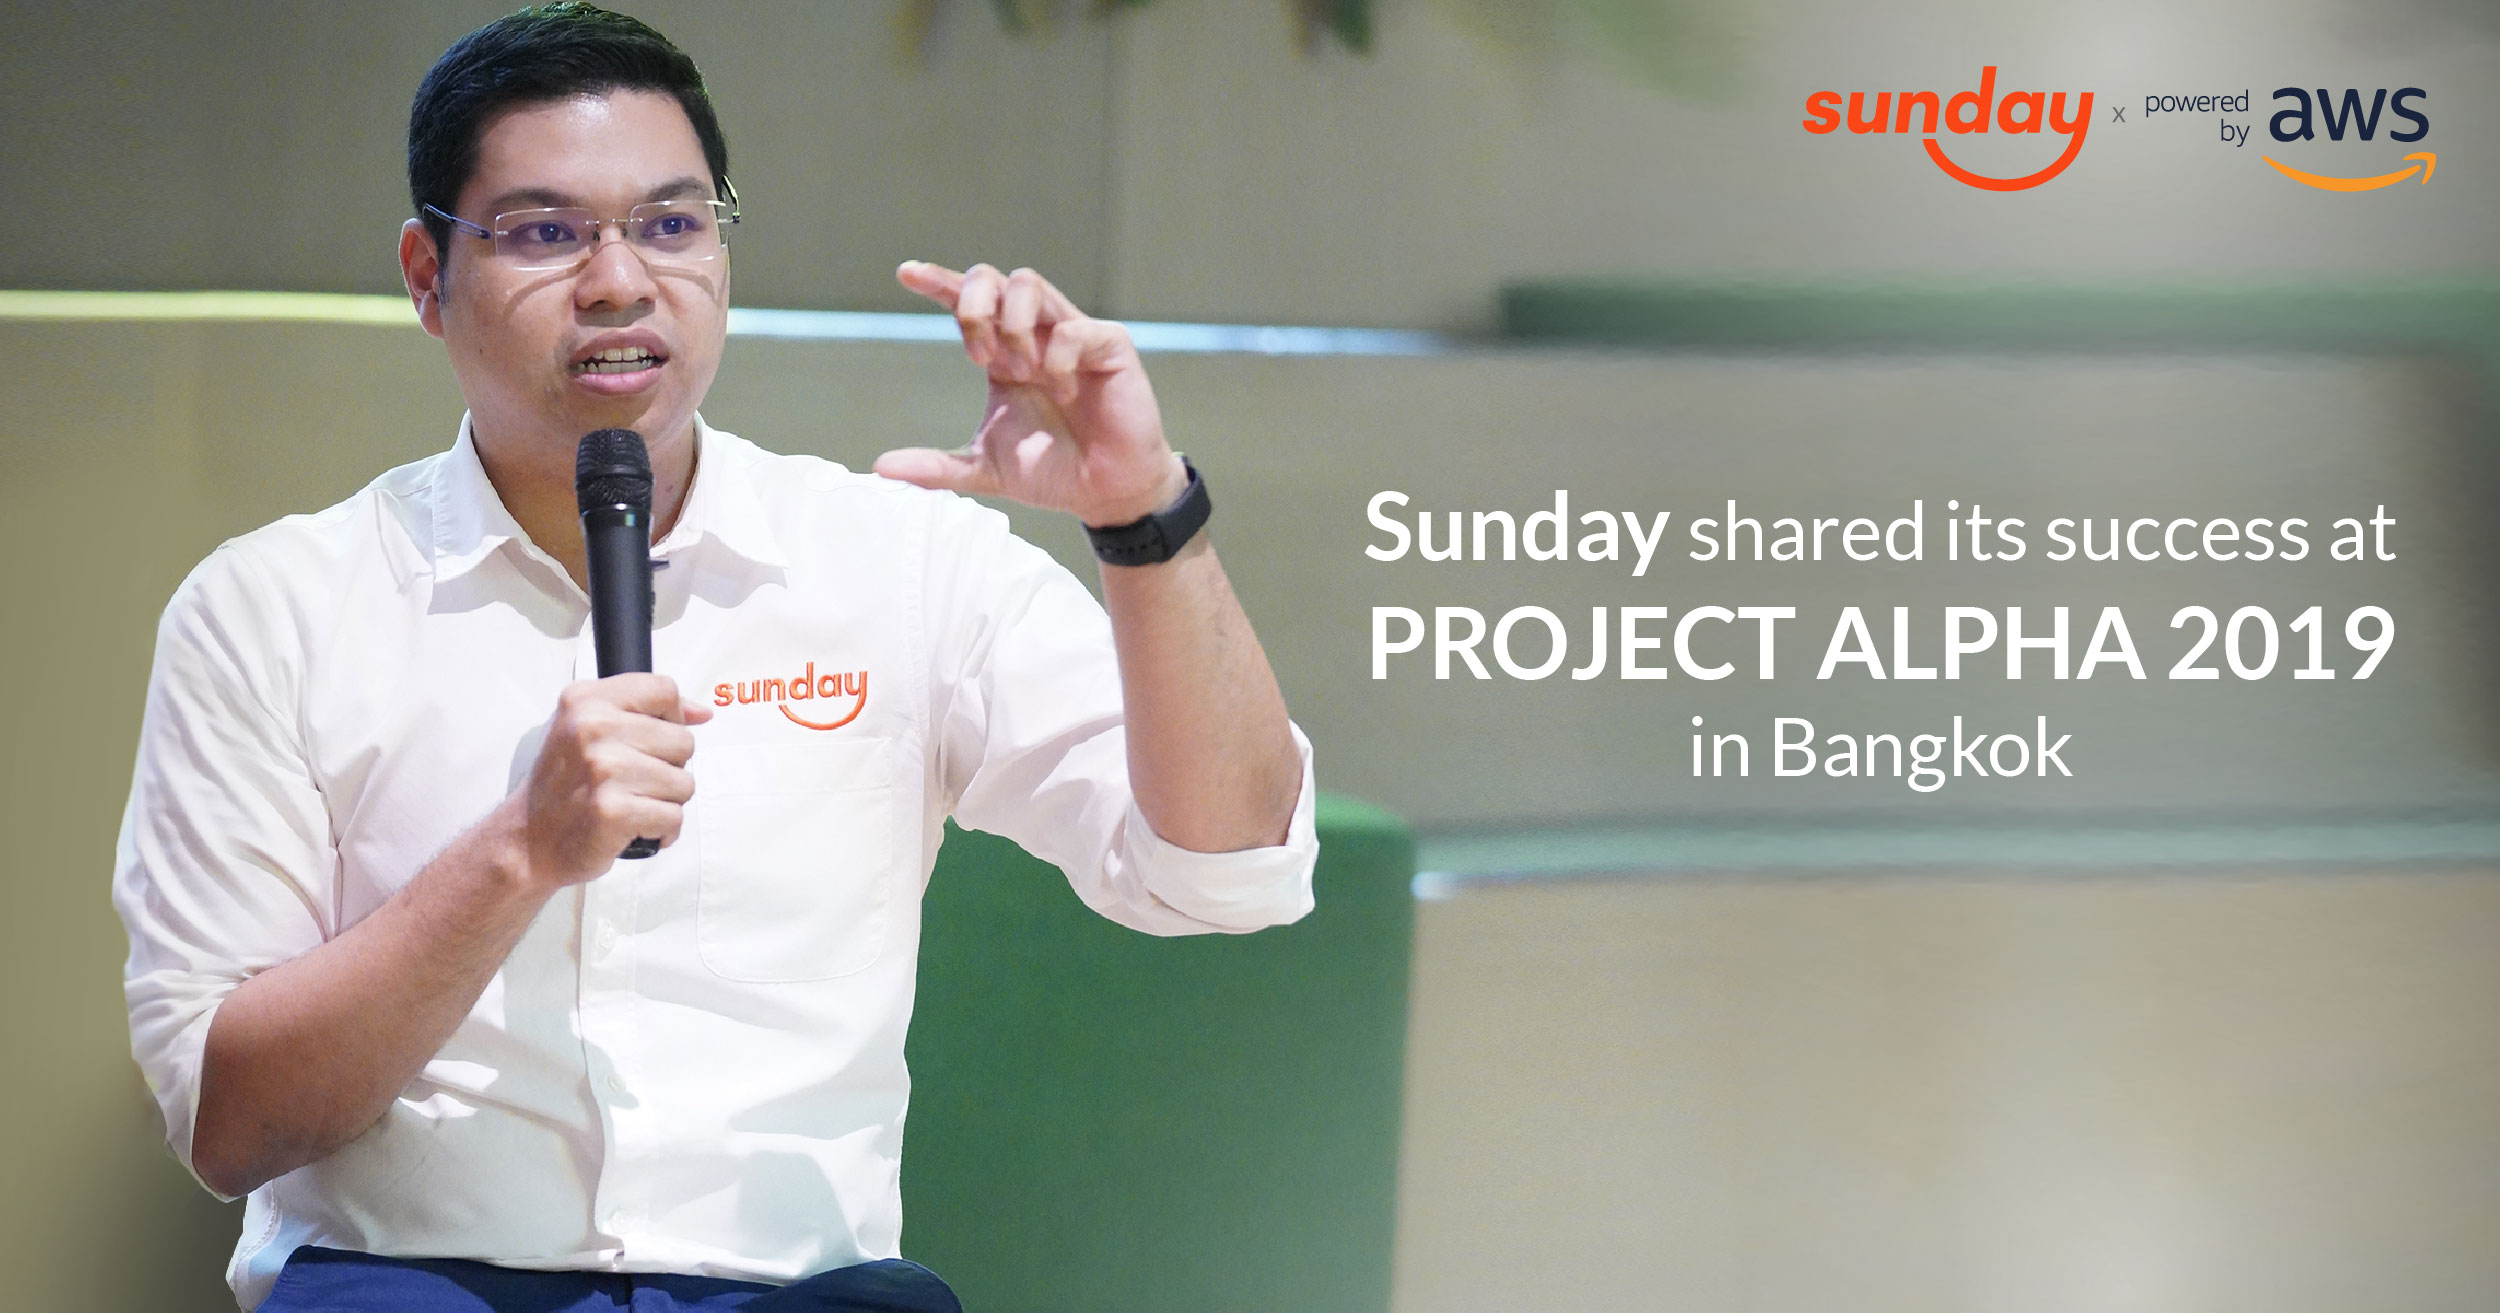 Suradej Panich, Chief Data Scientist of Sunday Ins Co., Ltd, shared the success of Sunday as a leading InsurTech startup in Thailand that is making waves within the insurance industry.